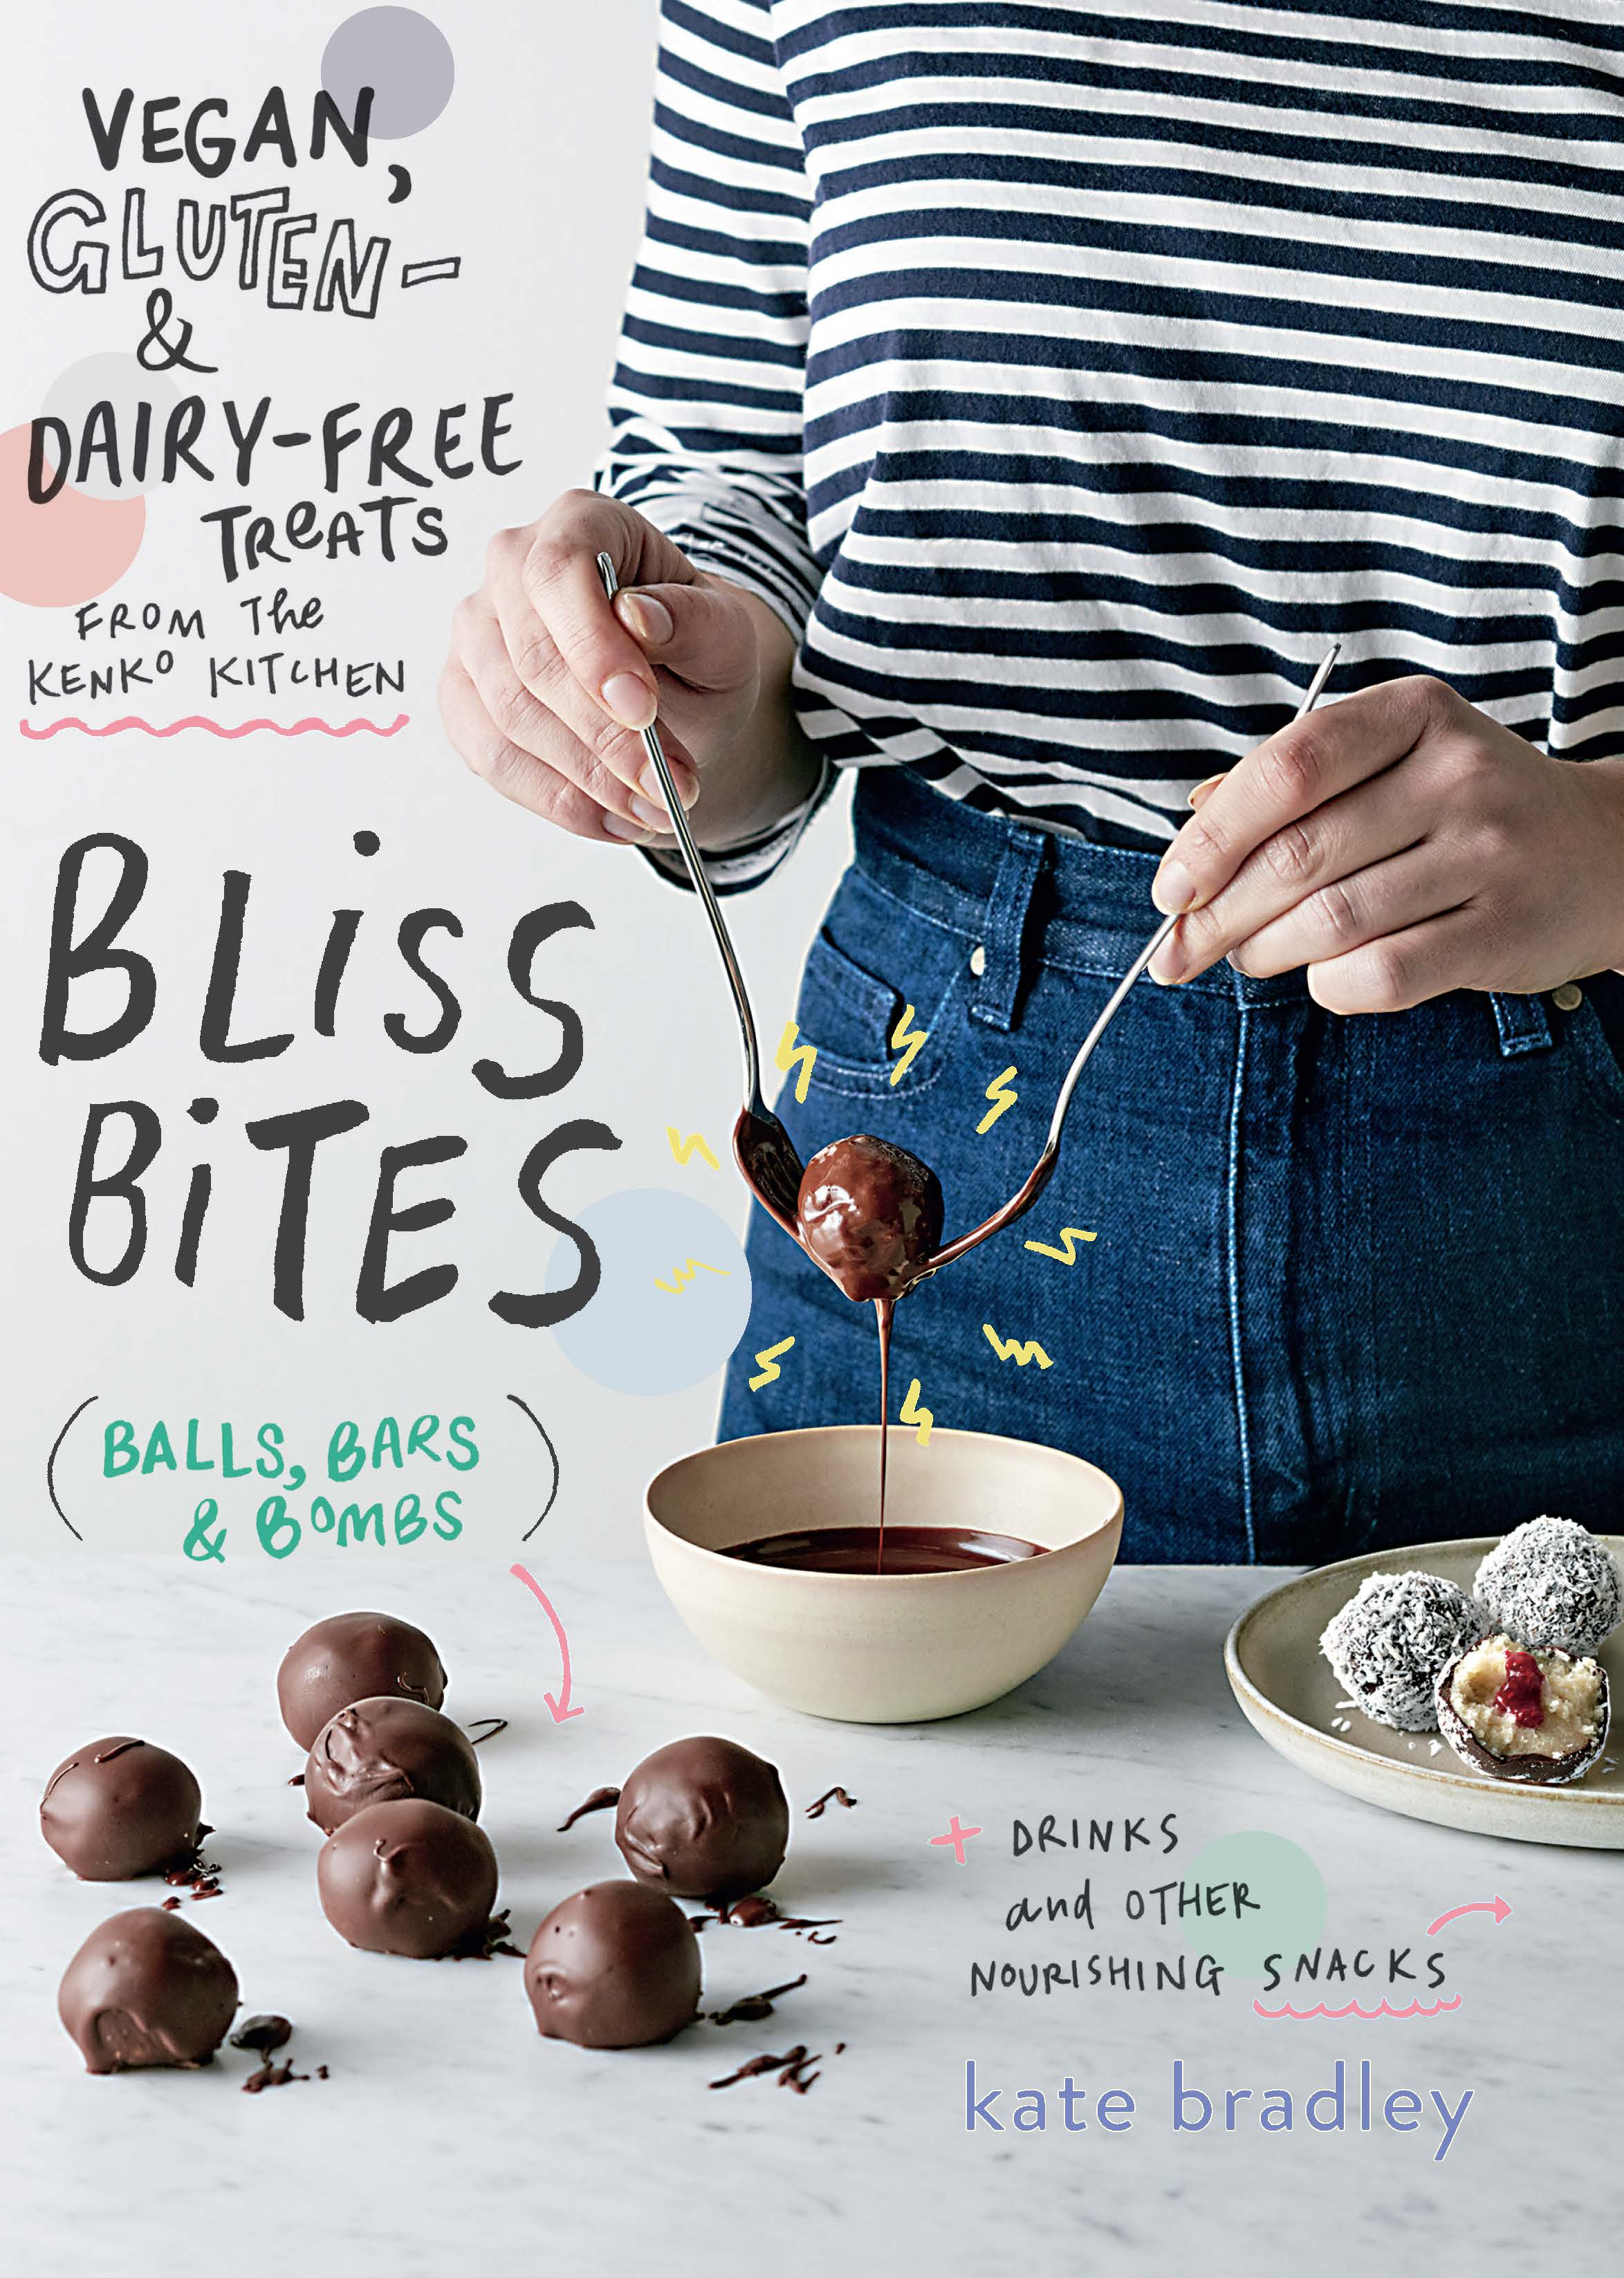 5-INGREDIENT PEANUT BUTTER BLISS BALLS